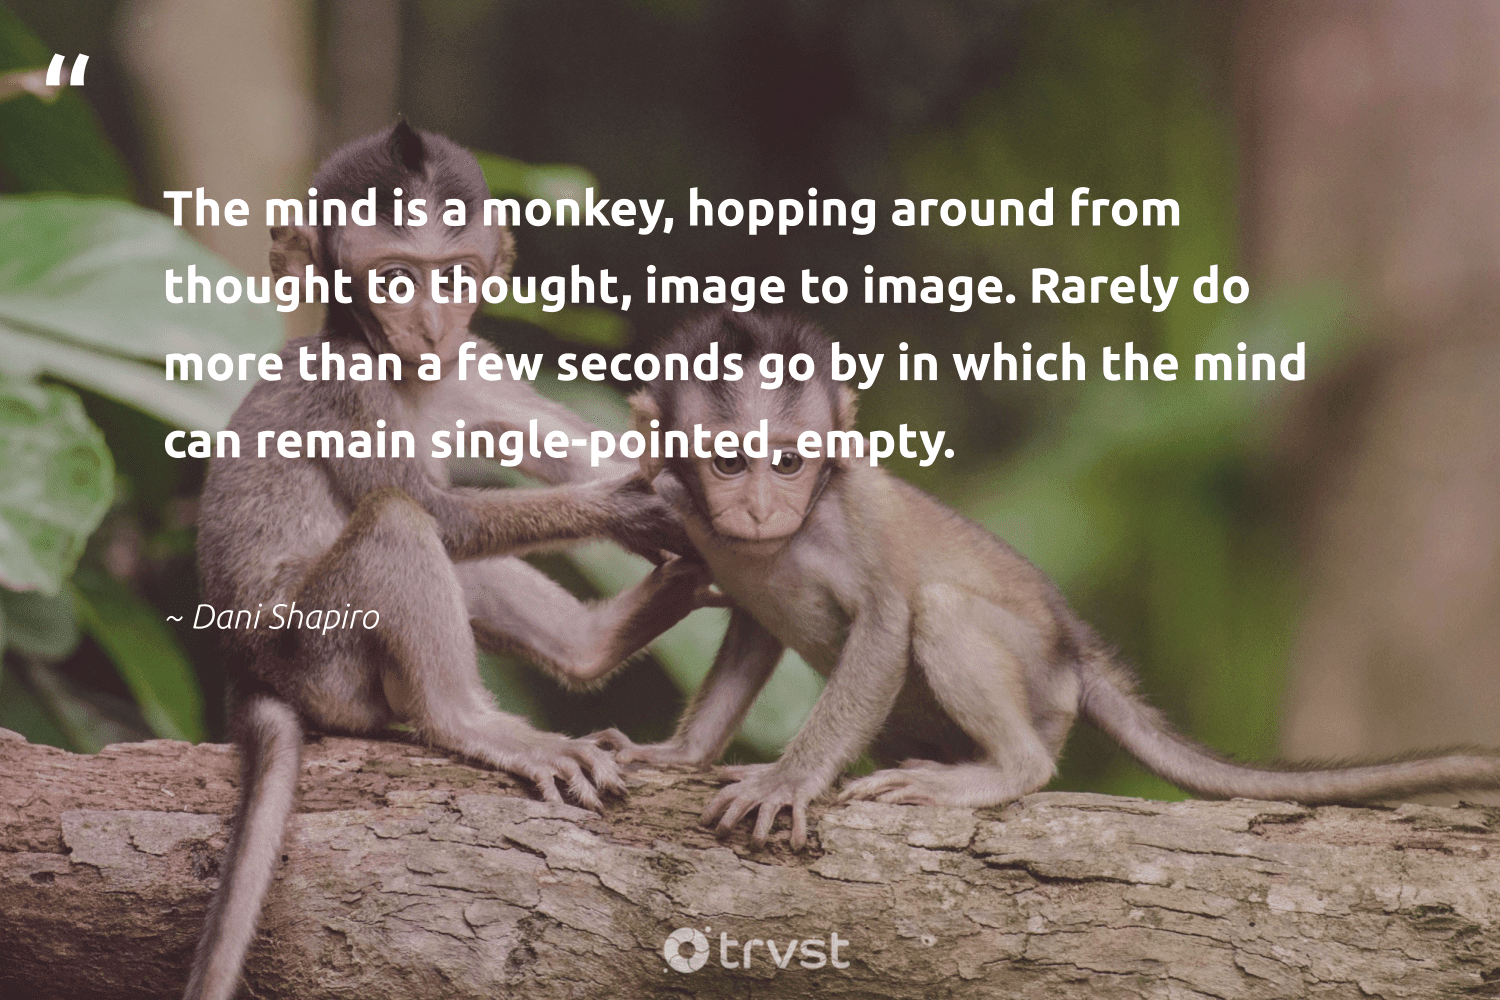 """The mind is a monkey, hopping around from thought to thought, image to image. Rarely do more than a few seconds go by in which the mind can remain single-pointed, empty.""  - Dani Shapiro #trvst #quotes #monkey #domore #perfectnature #bethechange #wild #changetheworld #majesticwildlife #collectiveaction #wildlifeprotection #beinspired"